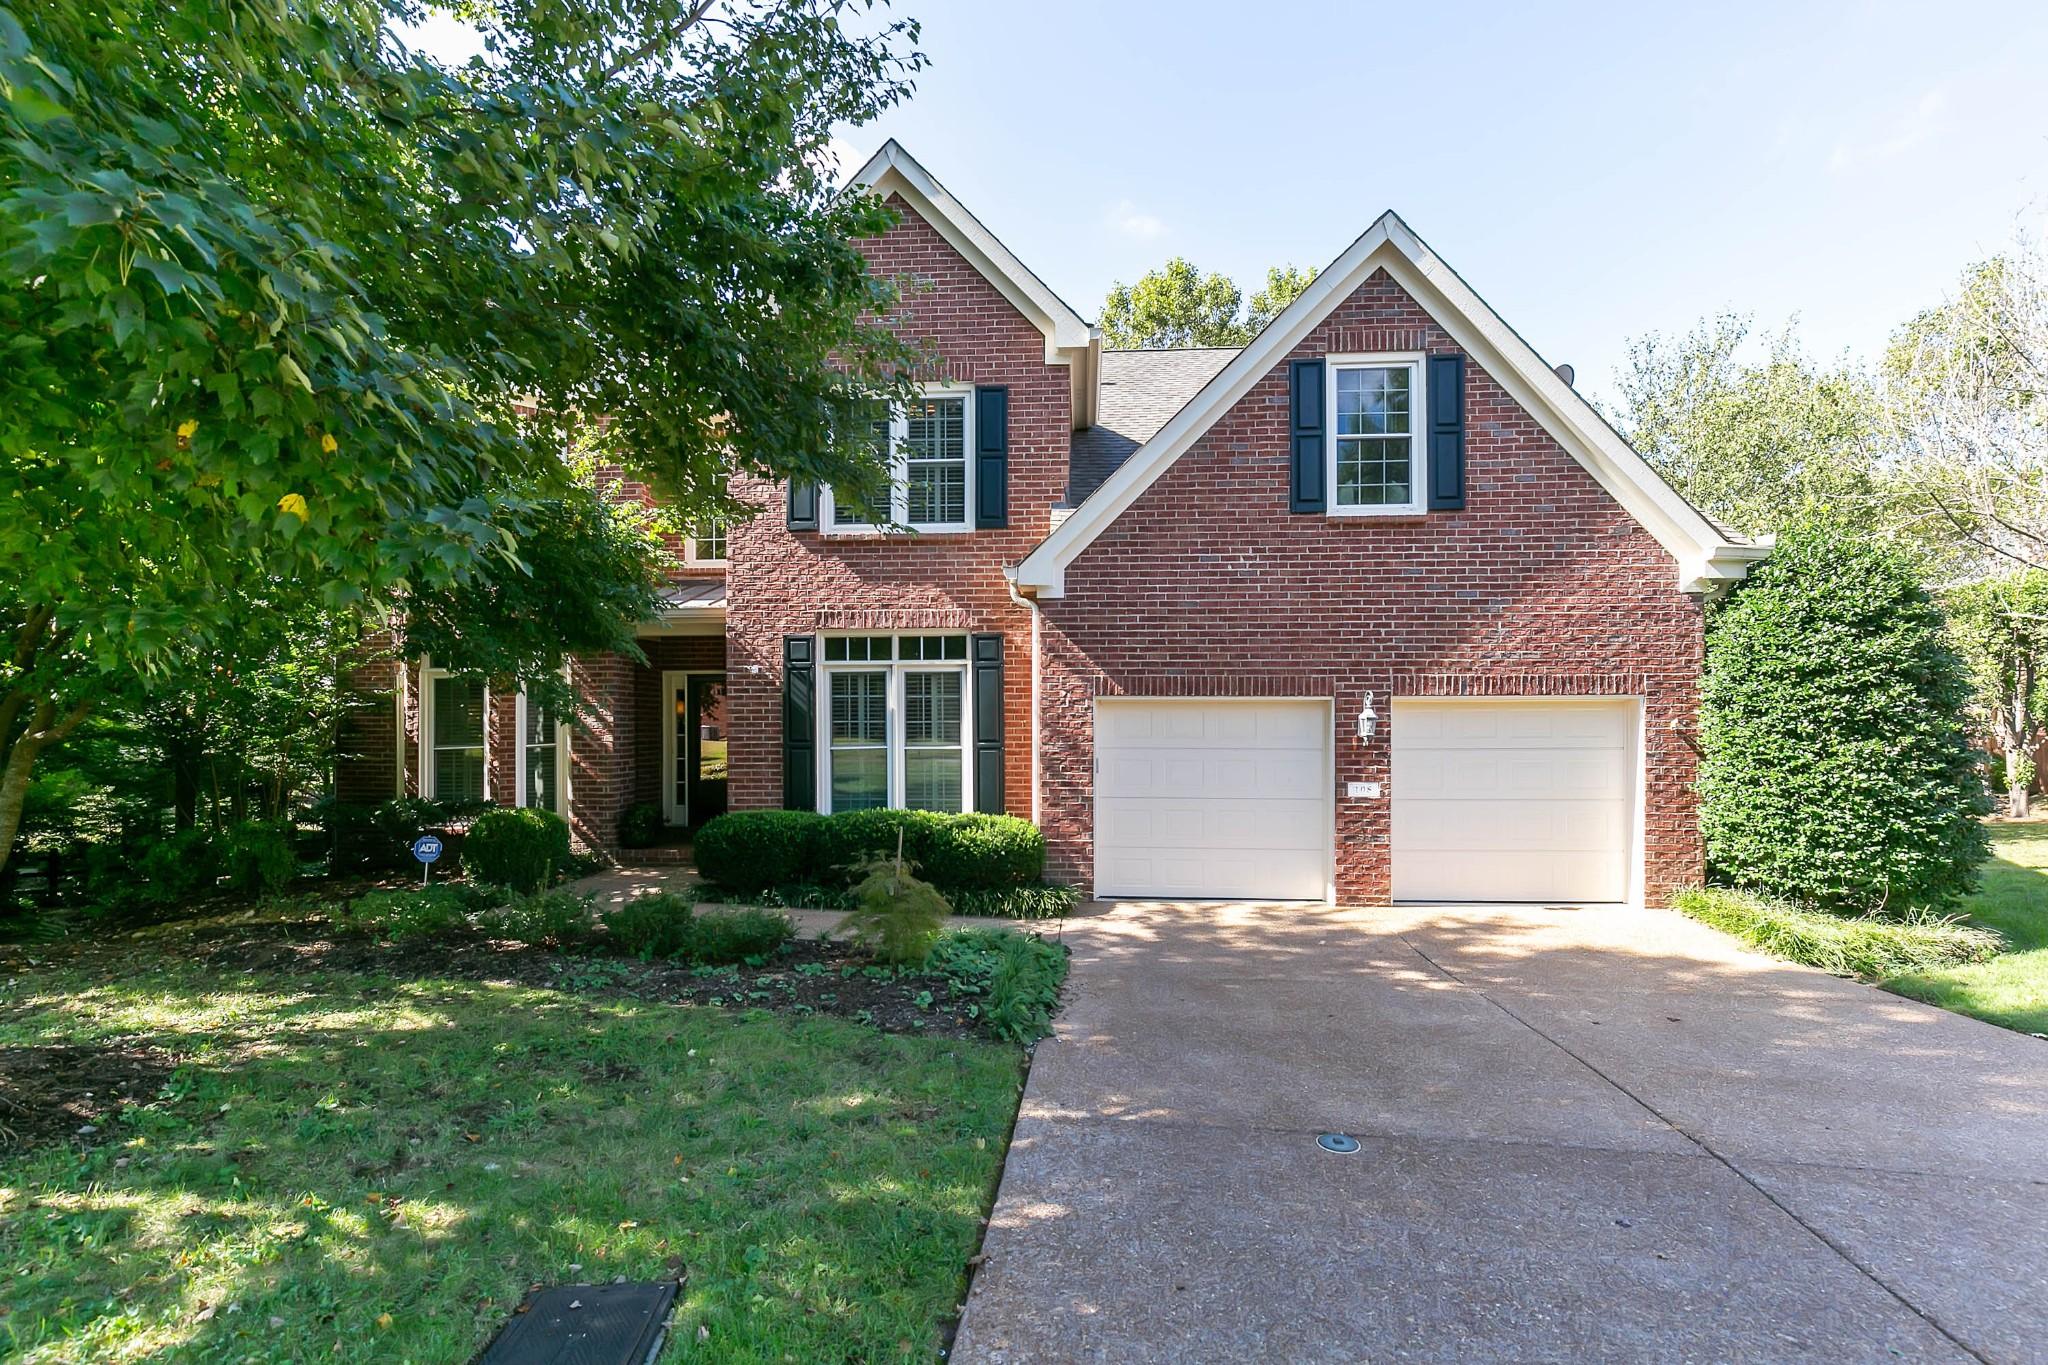 108 Shepards Sq, Nashville, TN 37211 - Nashville, TN real estate listing